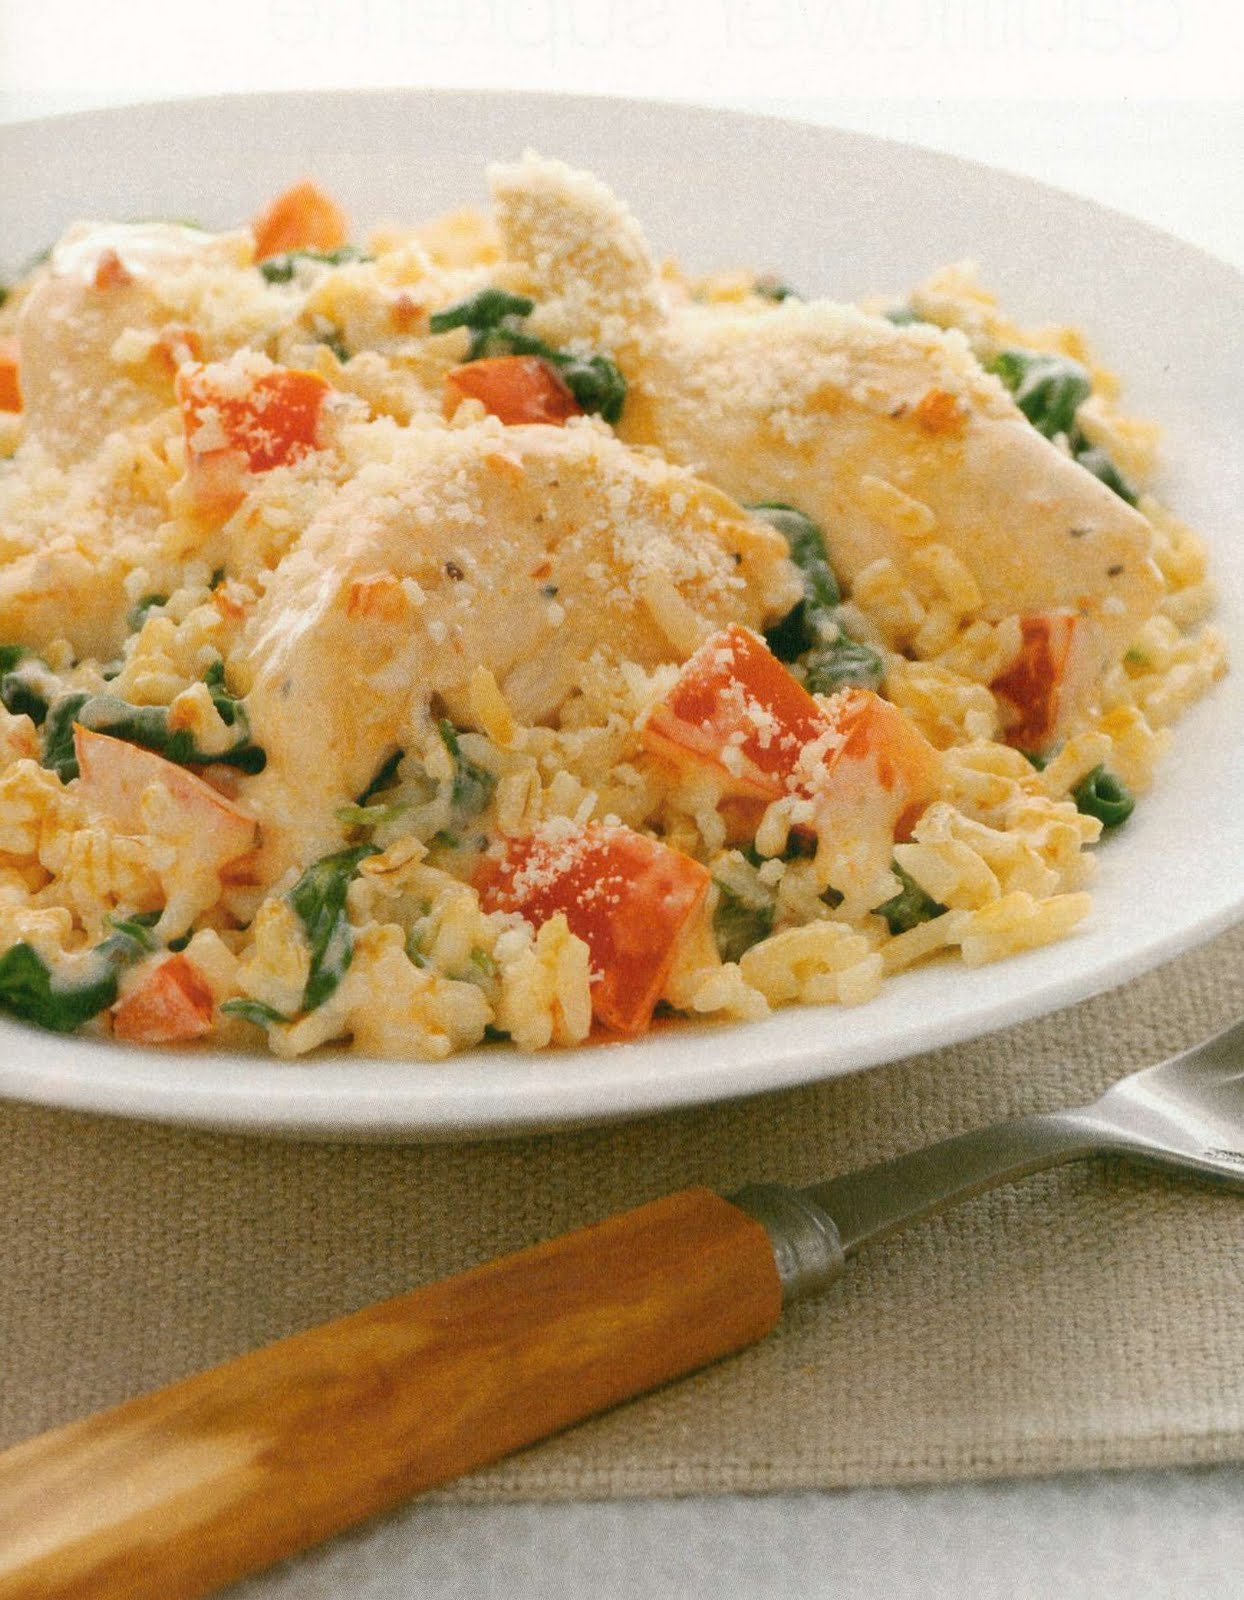 Creamy Chicken, Spinach and Rice